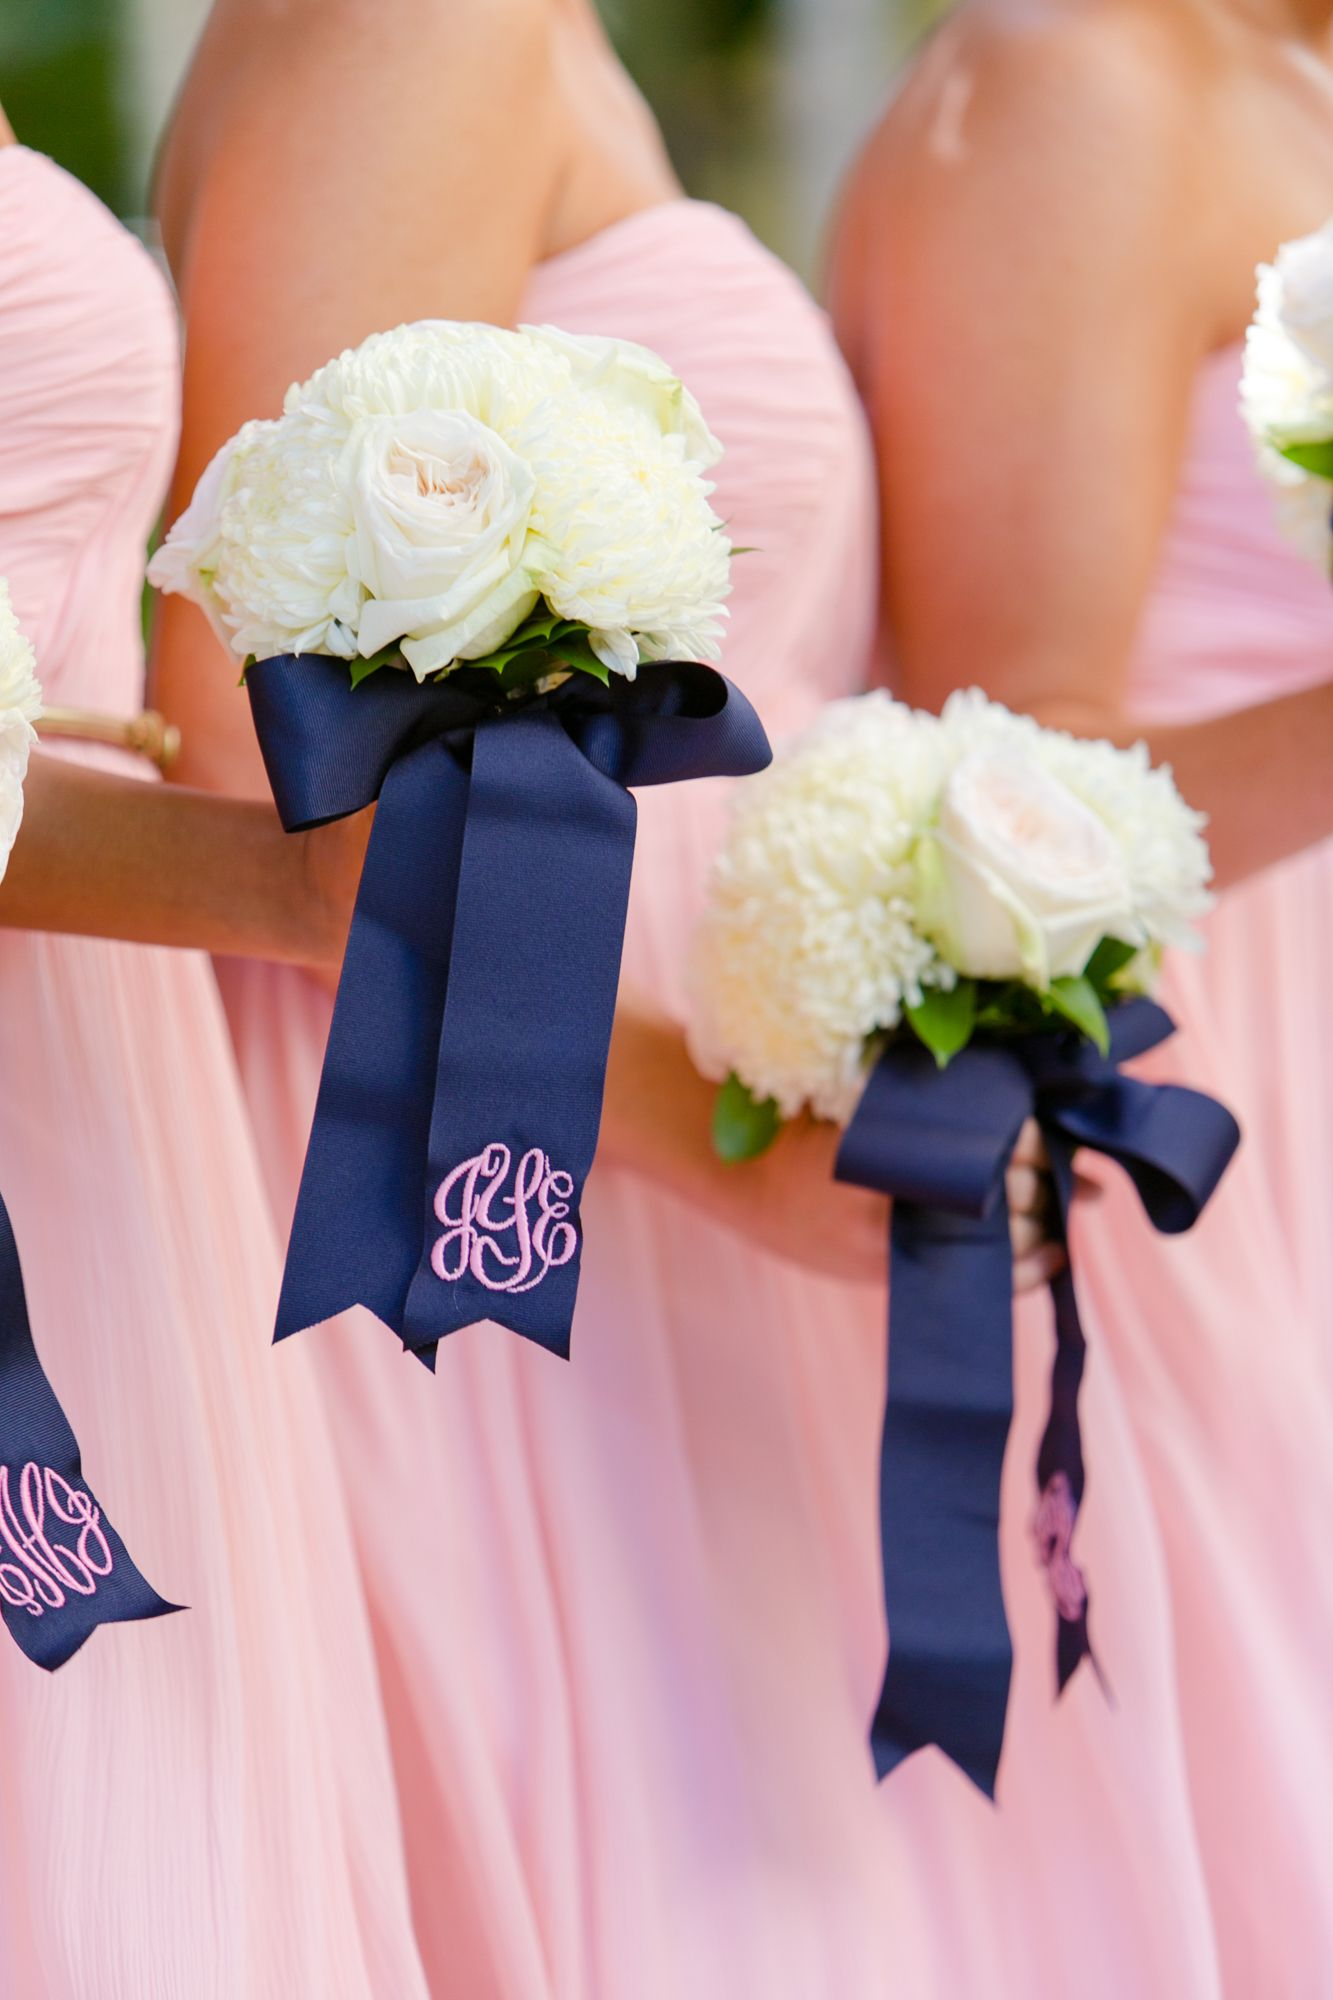 White Peony Bridesmaid Bouquet Monogram Wrap